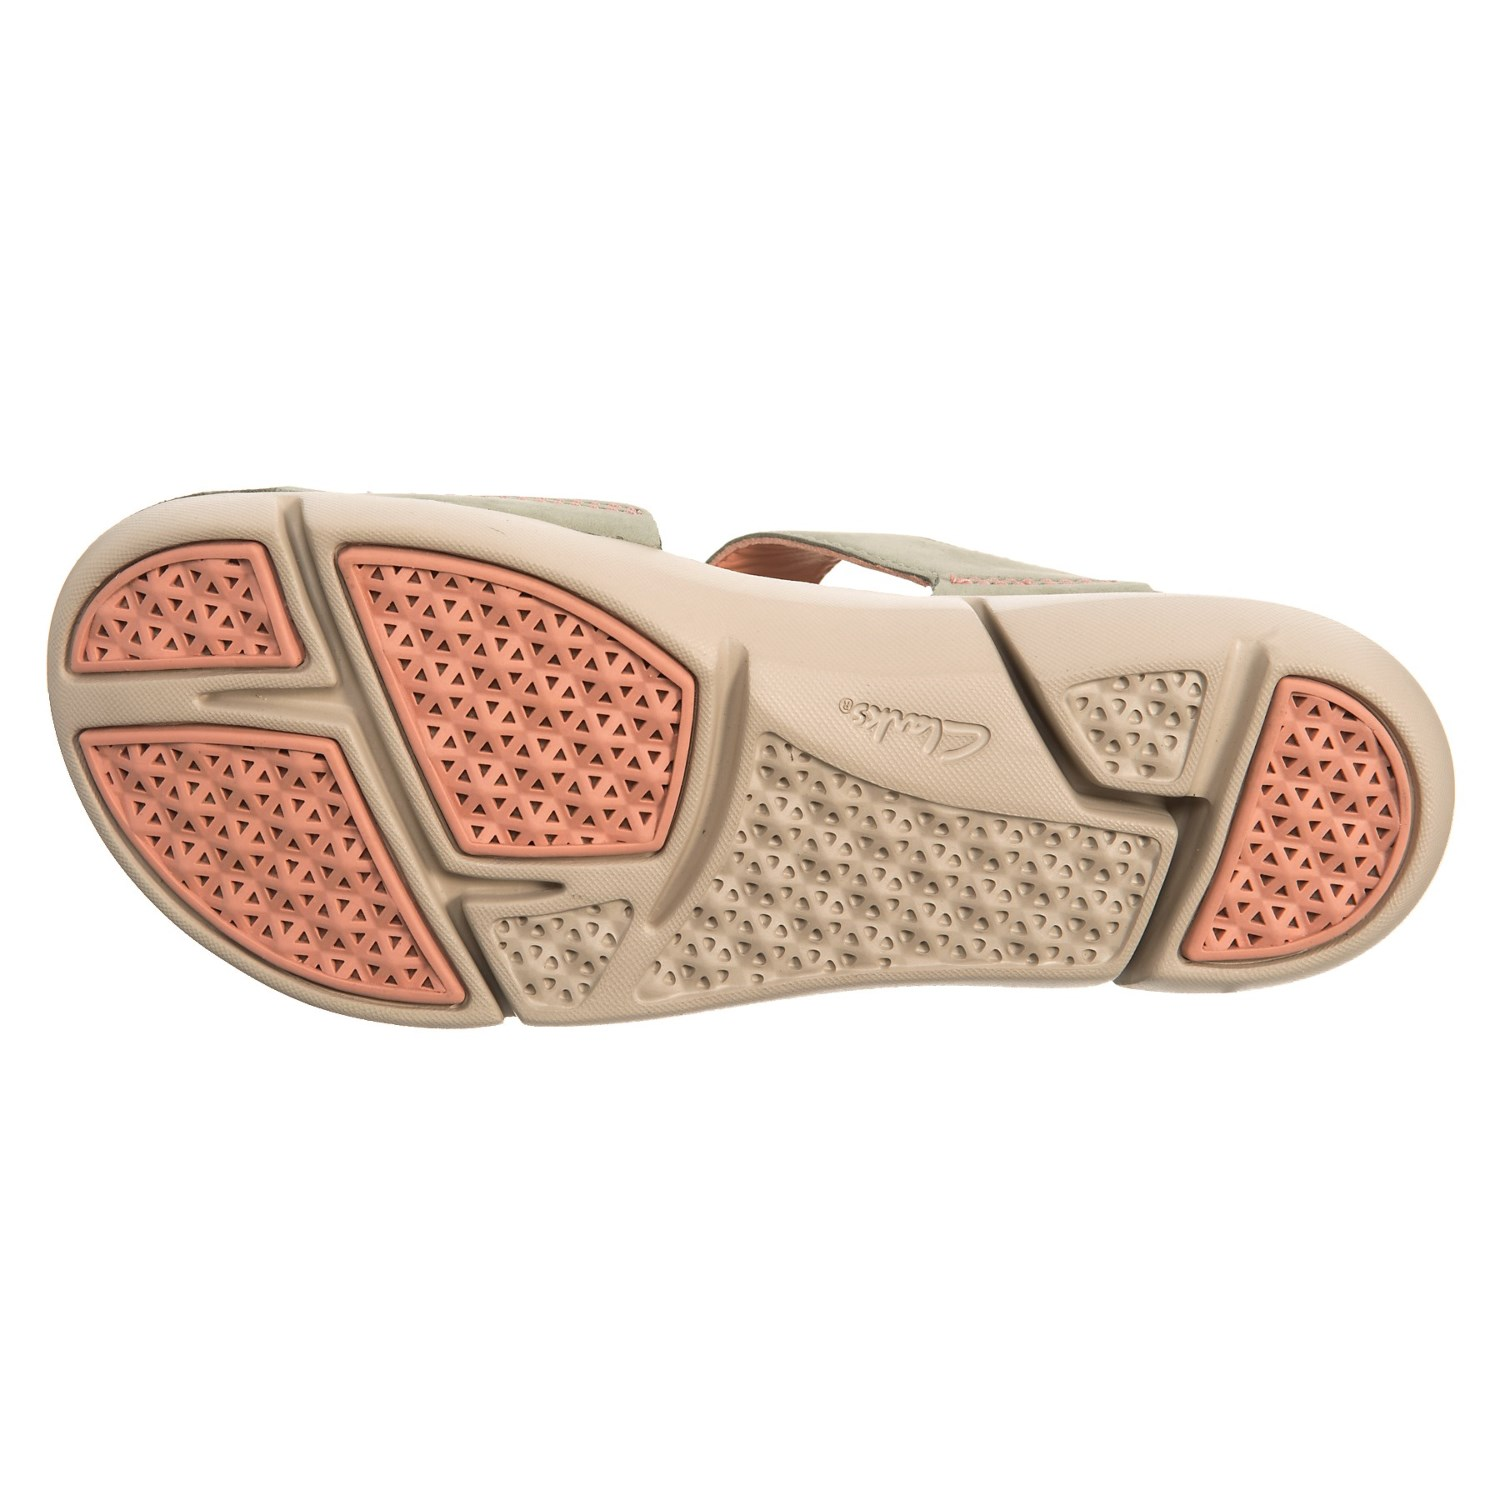 bac0fdaa32a9 Clarks Tri Clover Sandals (For Women) - Save 60%